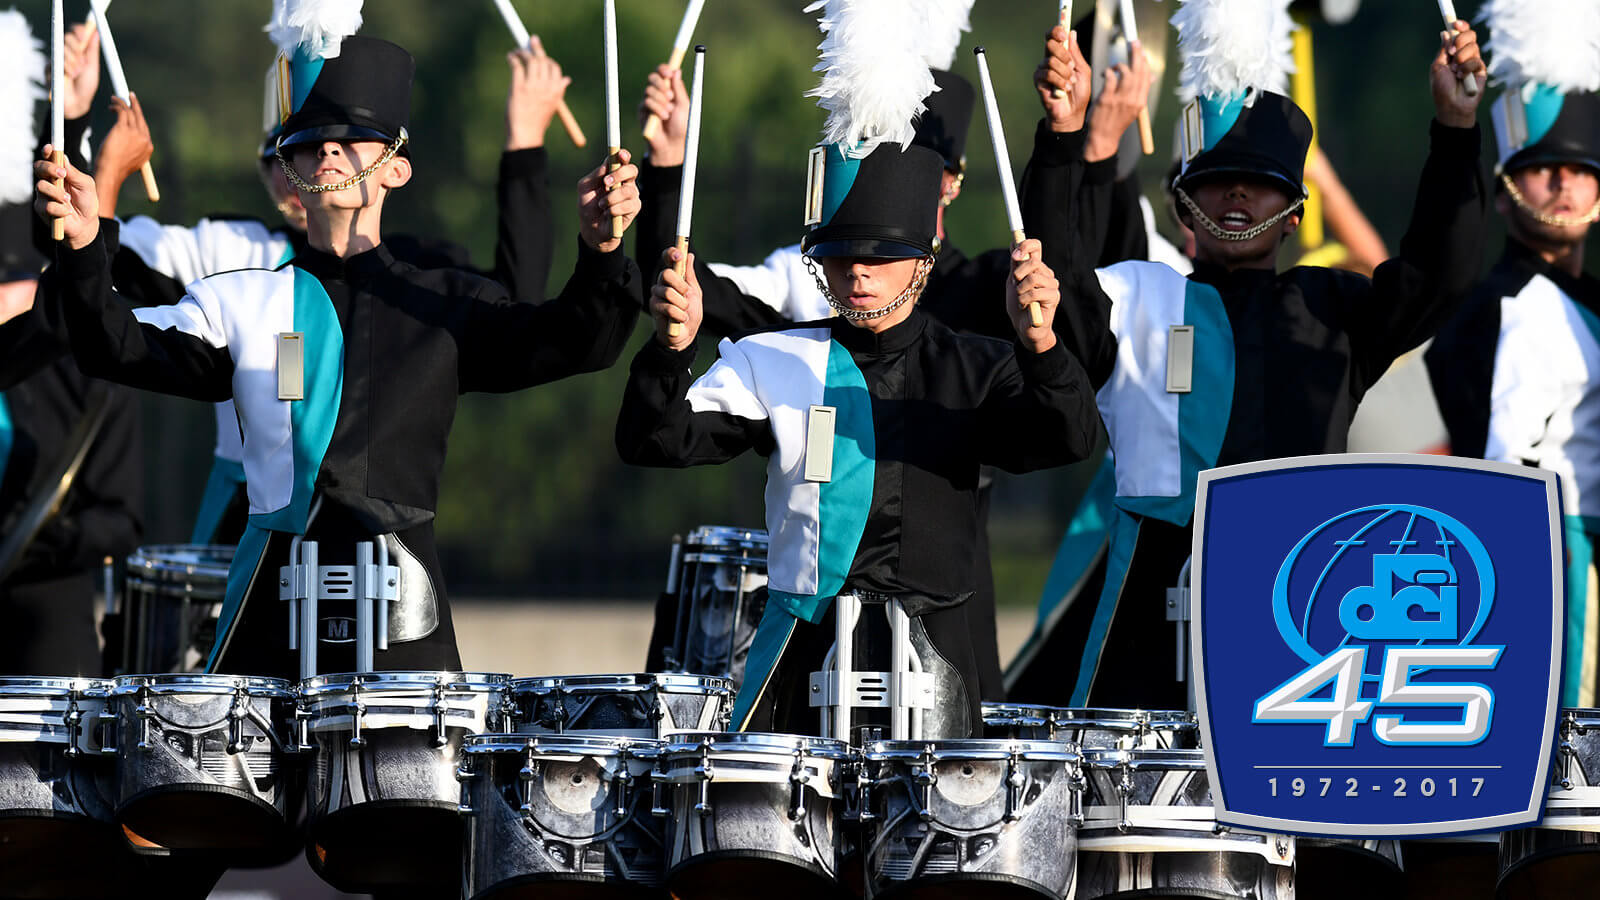 Drum Corps at the Rose Bowl | Pasadena, CA